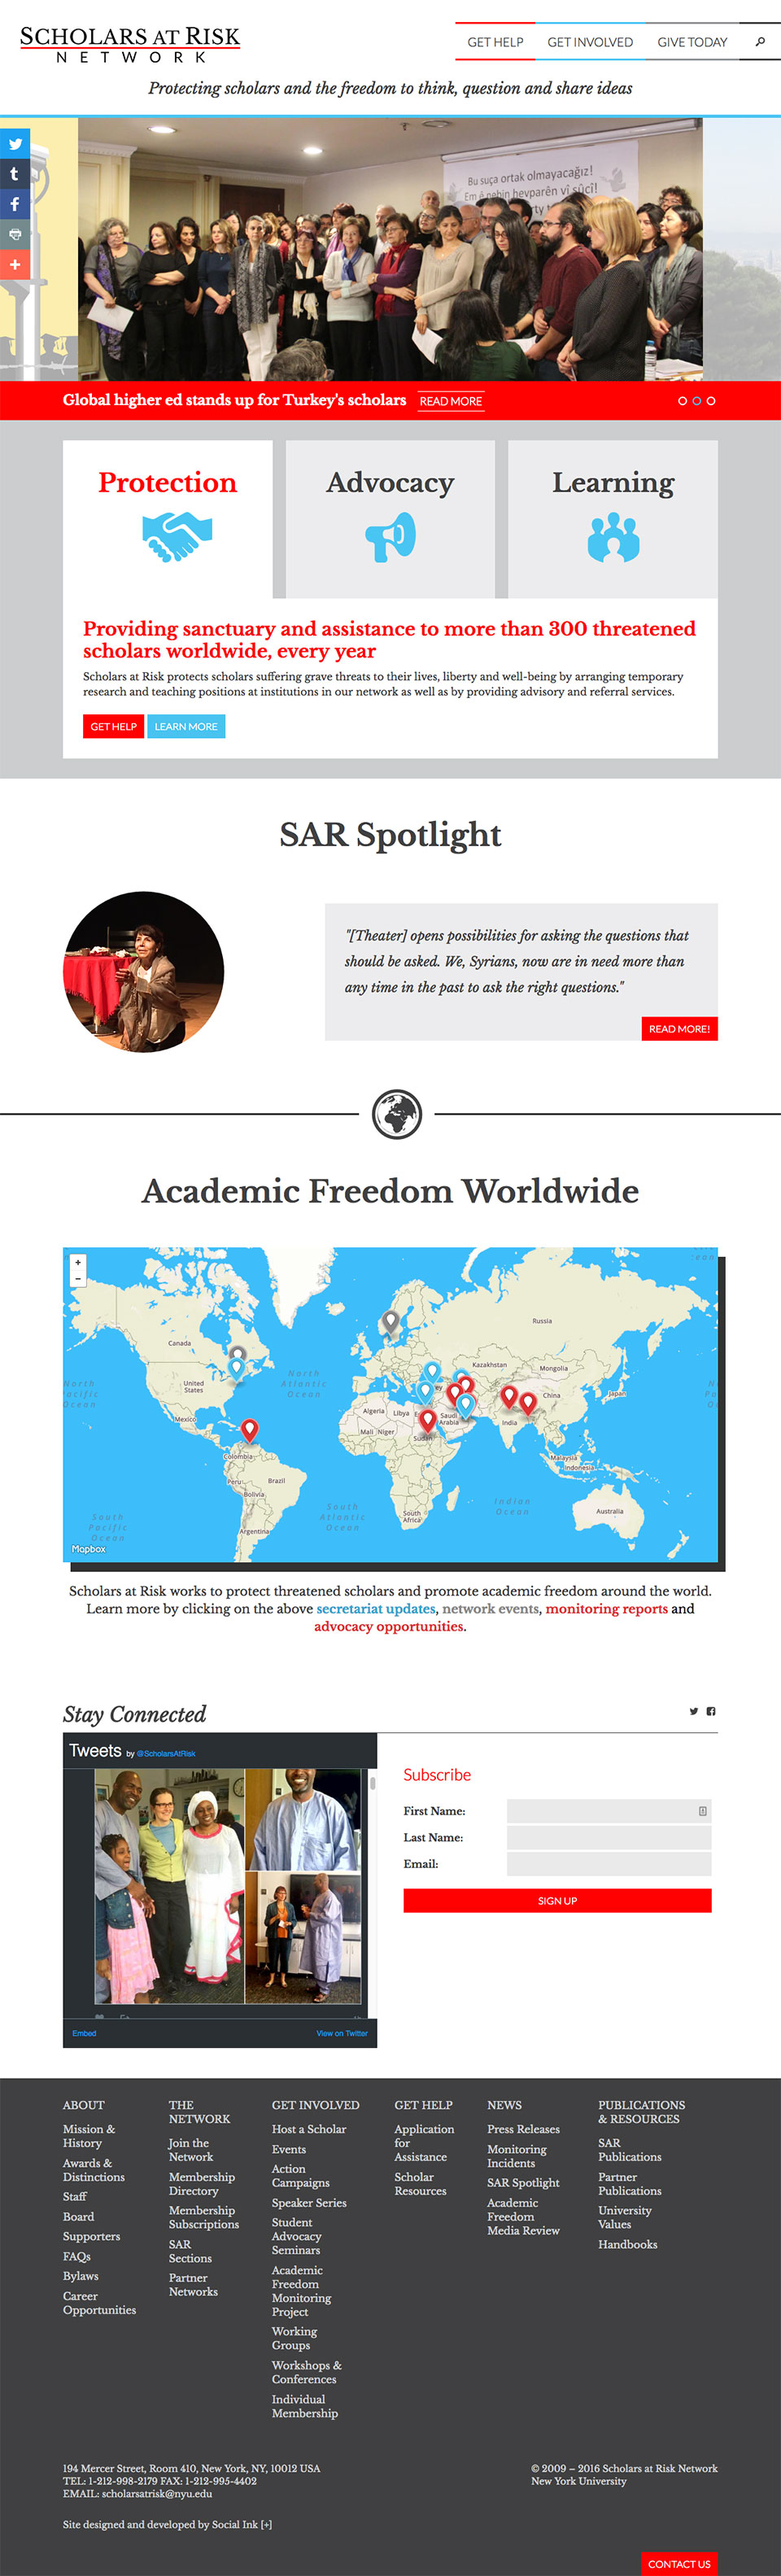 Scholars at Risk at NYU: Scholars at Risk Homepage